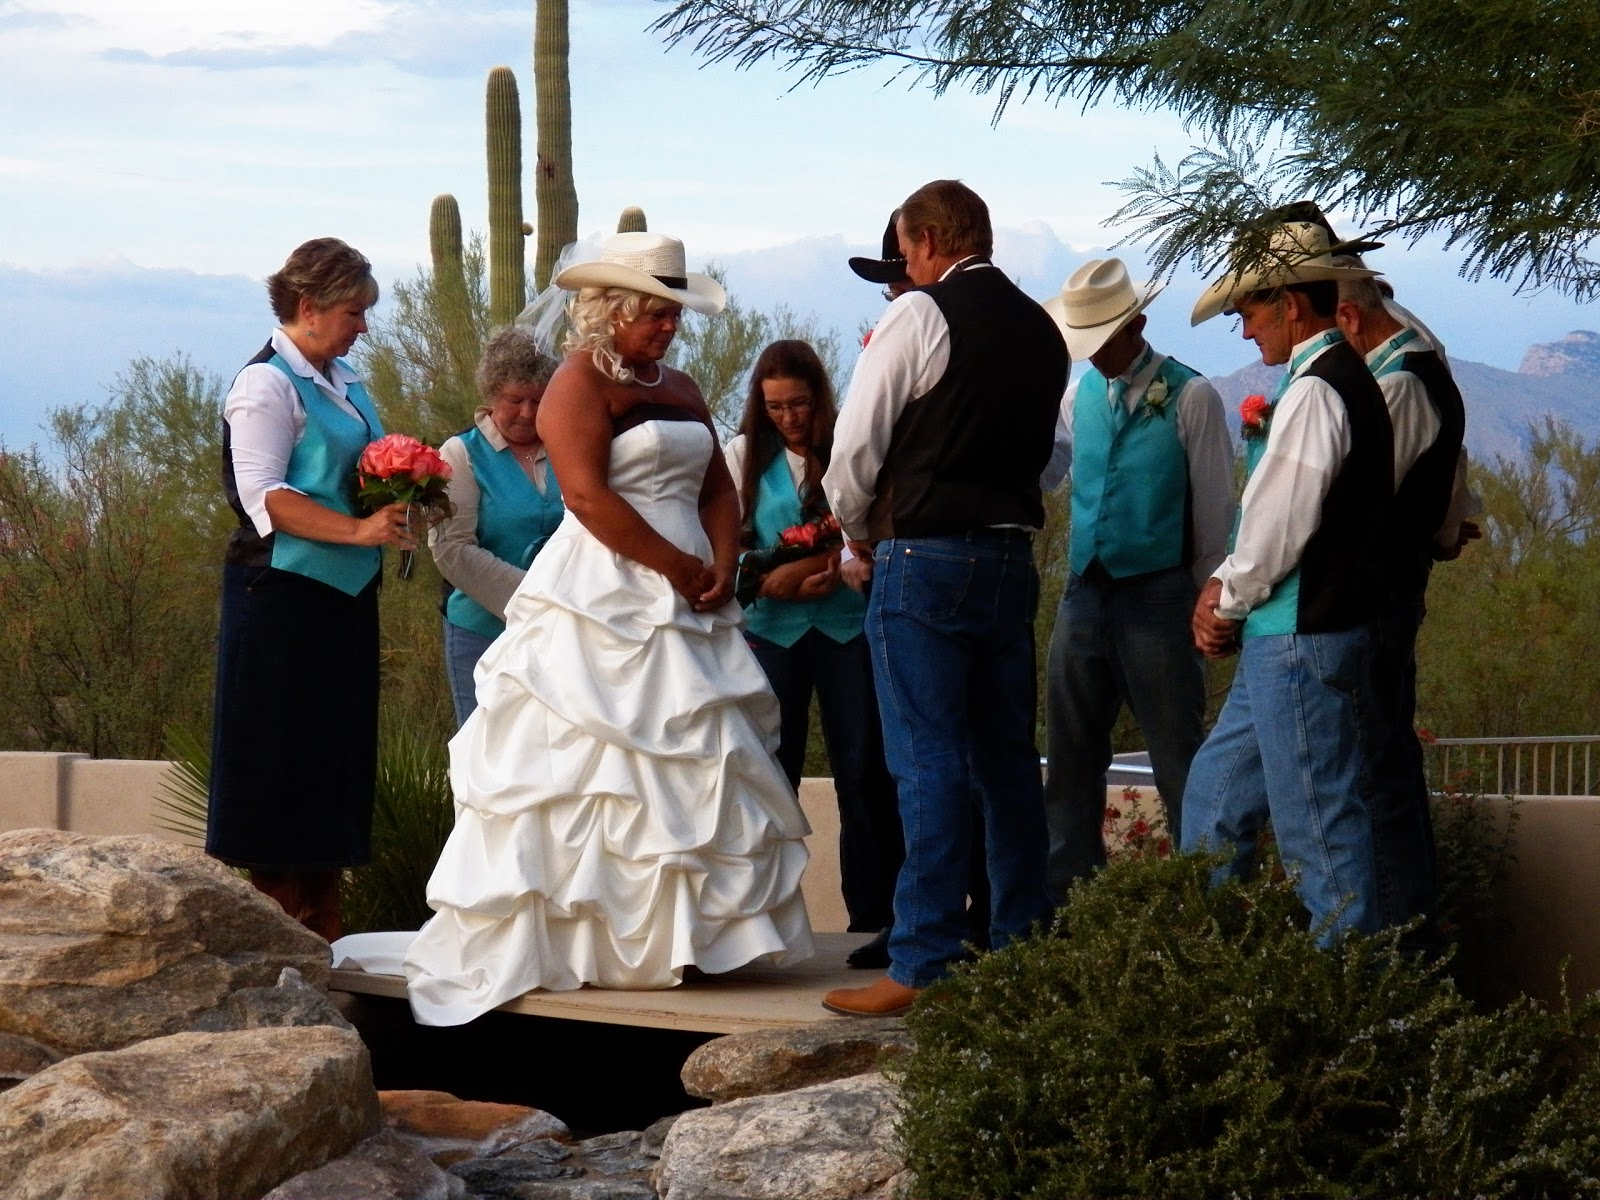 My aunt s country western themed wedding in tucson az